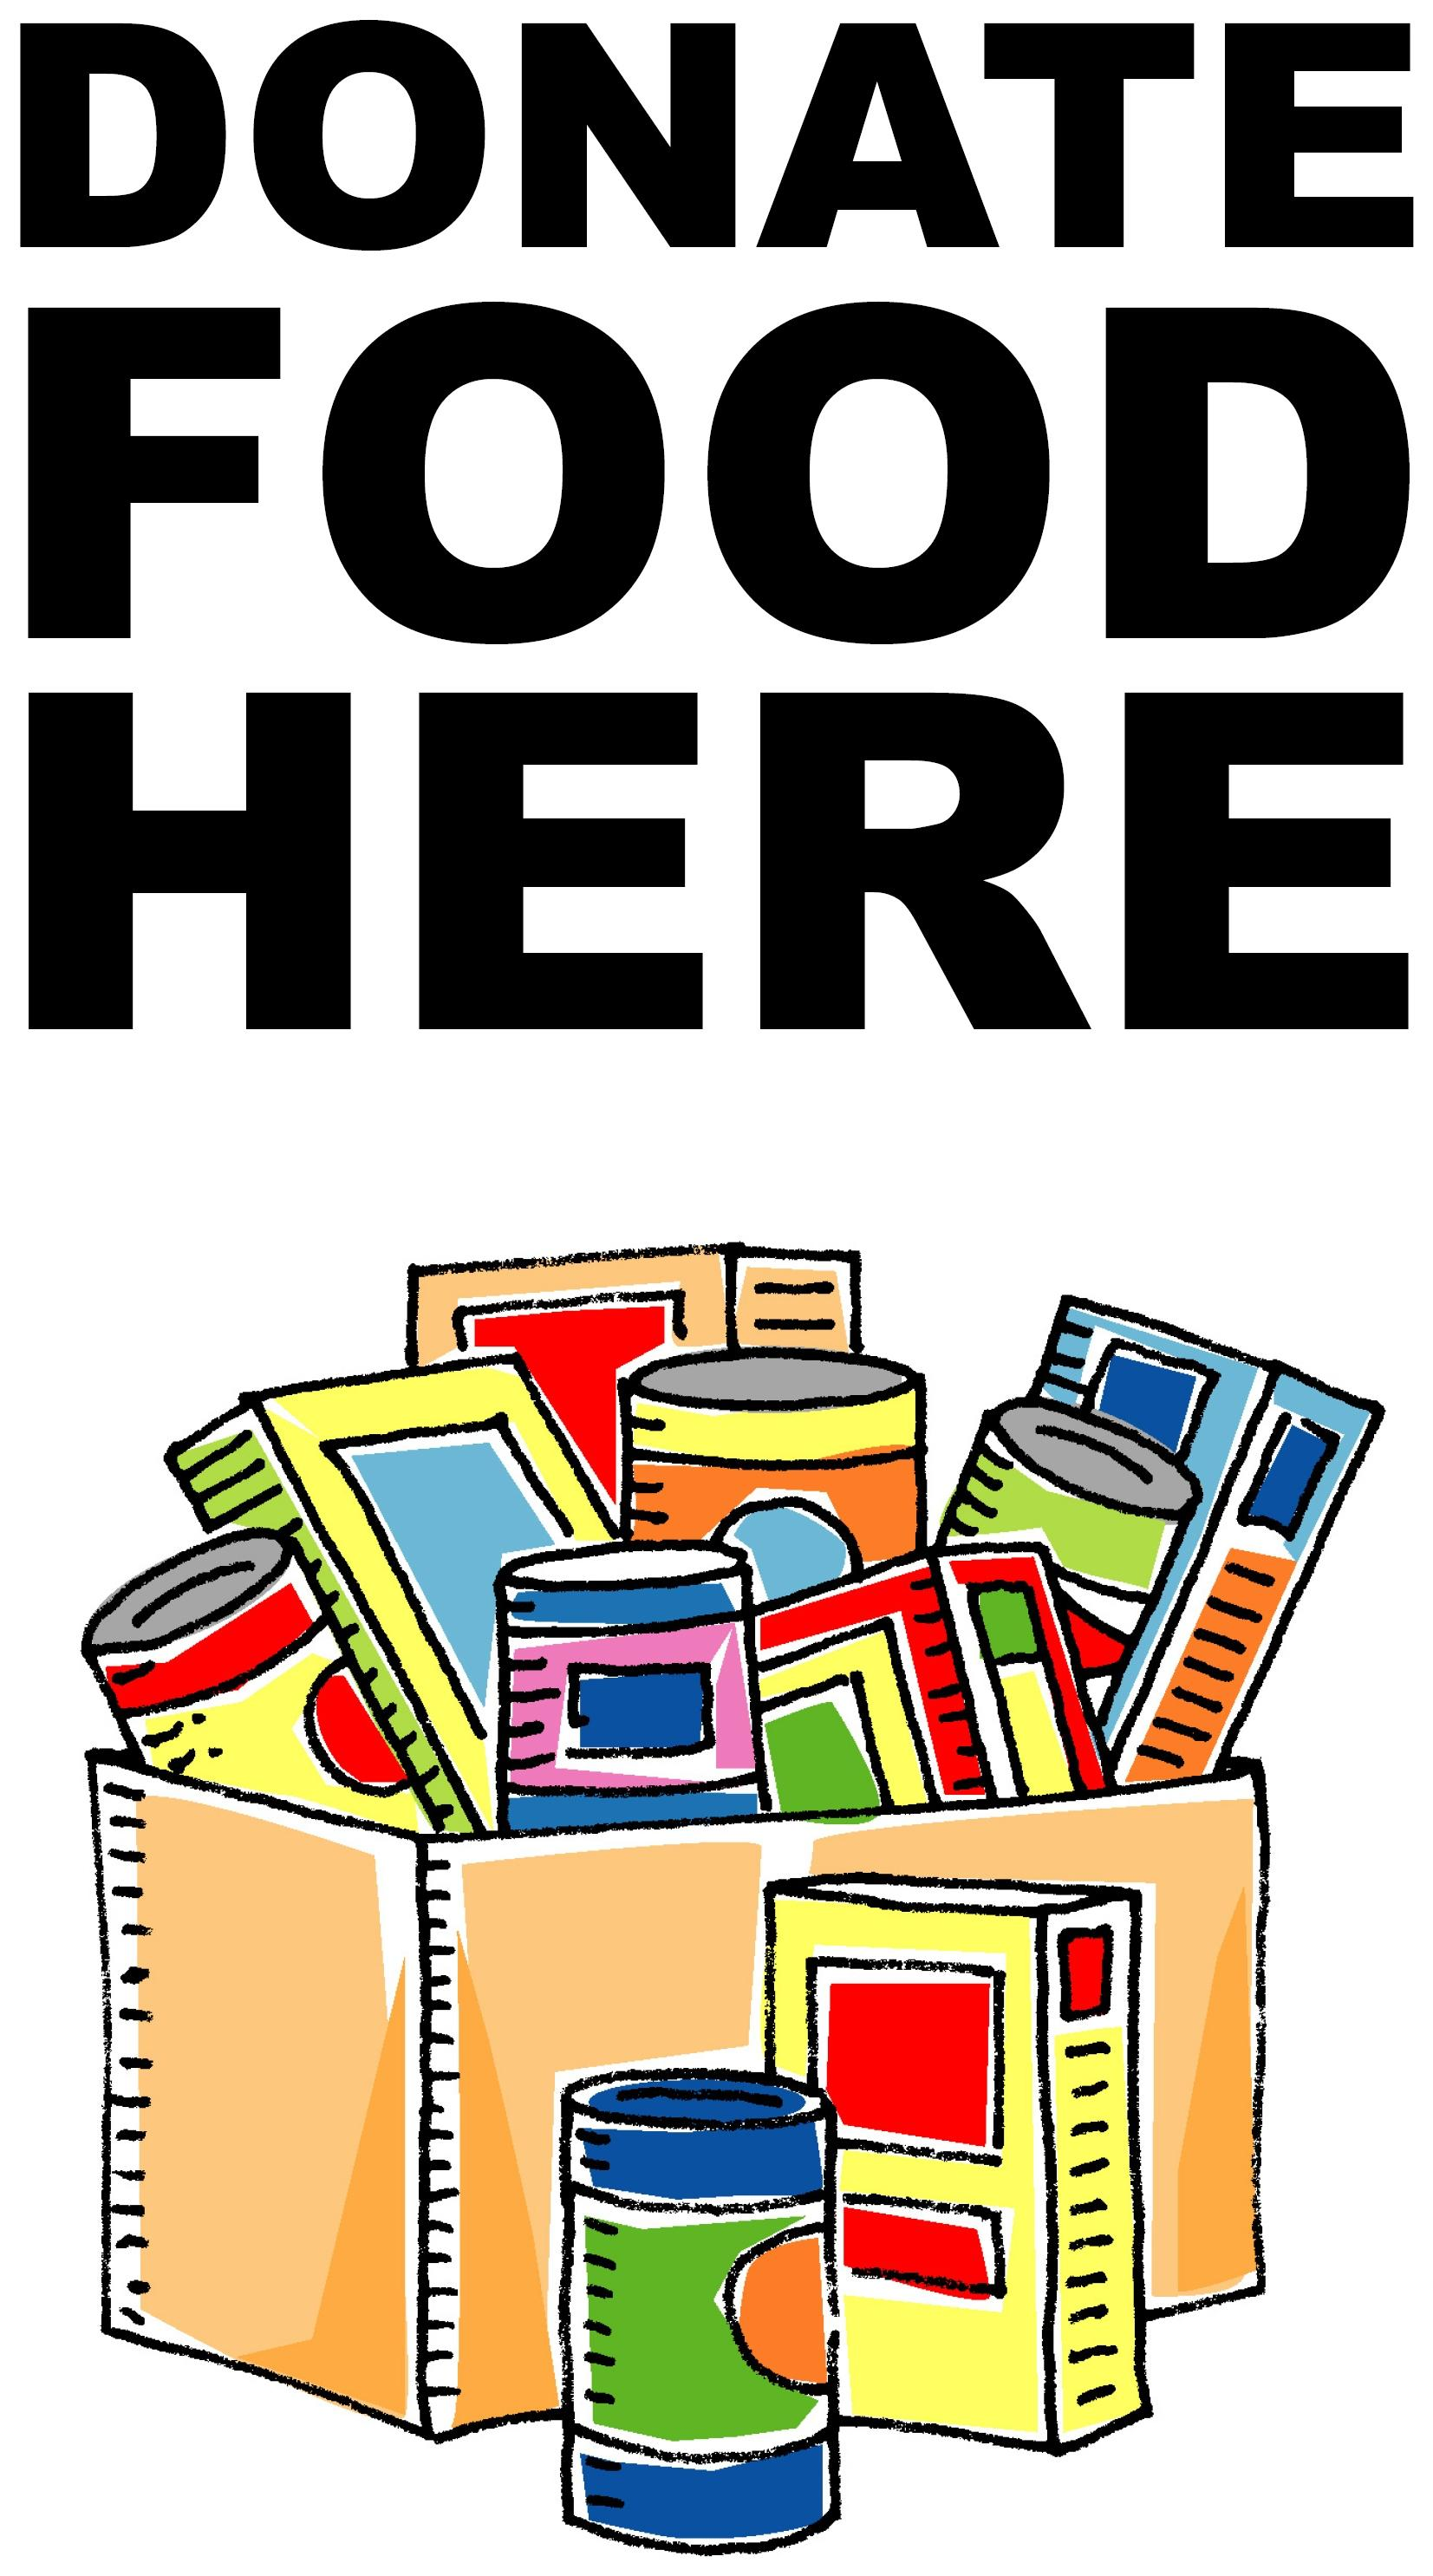 Canned Food Drive Slogans Can Food Drive-Canned Food Drive Slogans Can Food Drive Clip Art-8